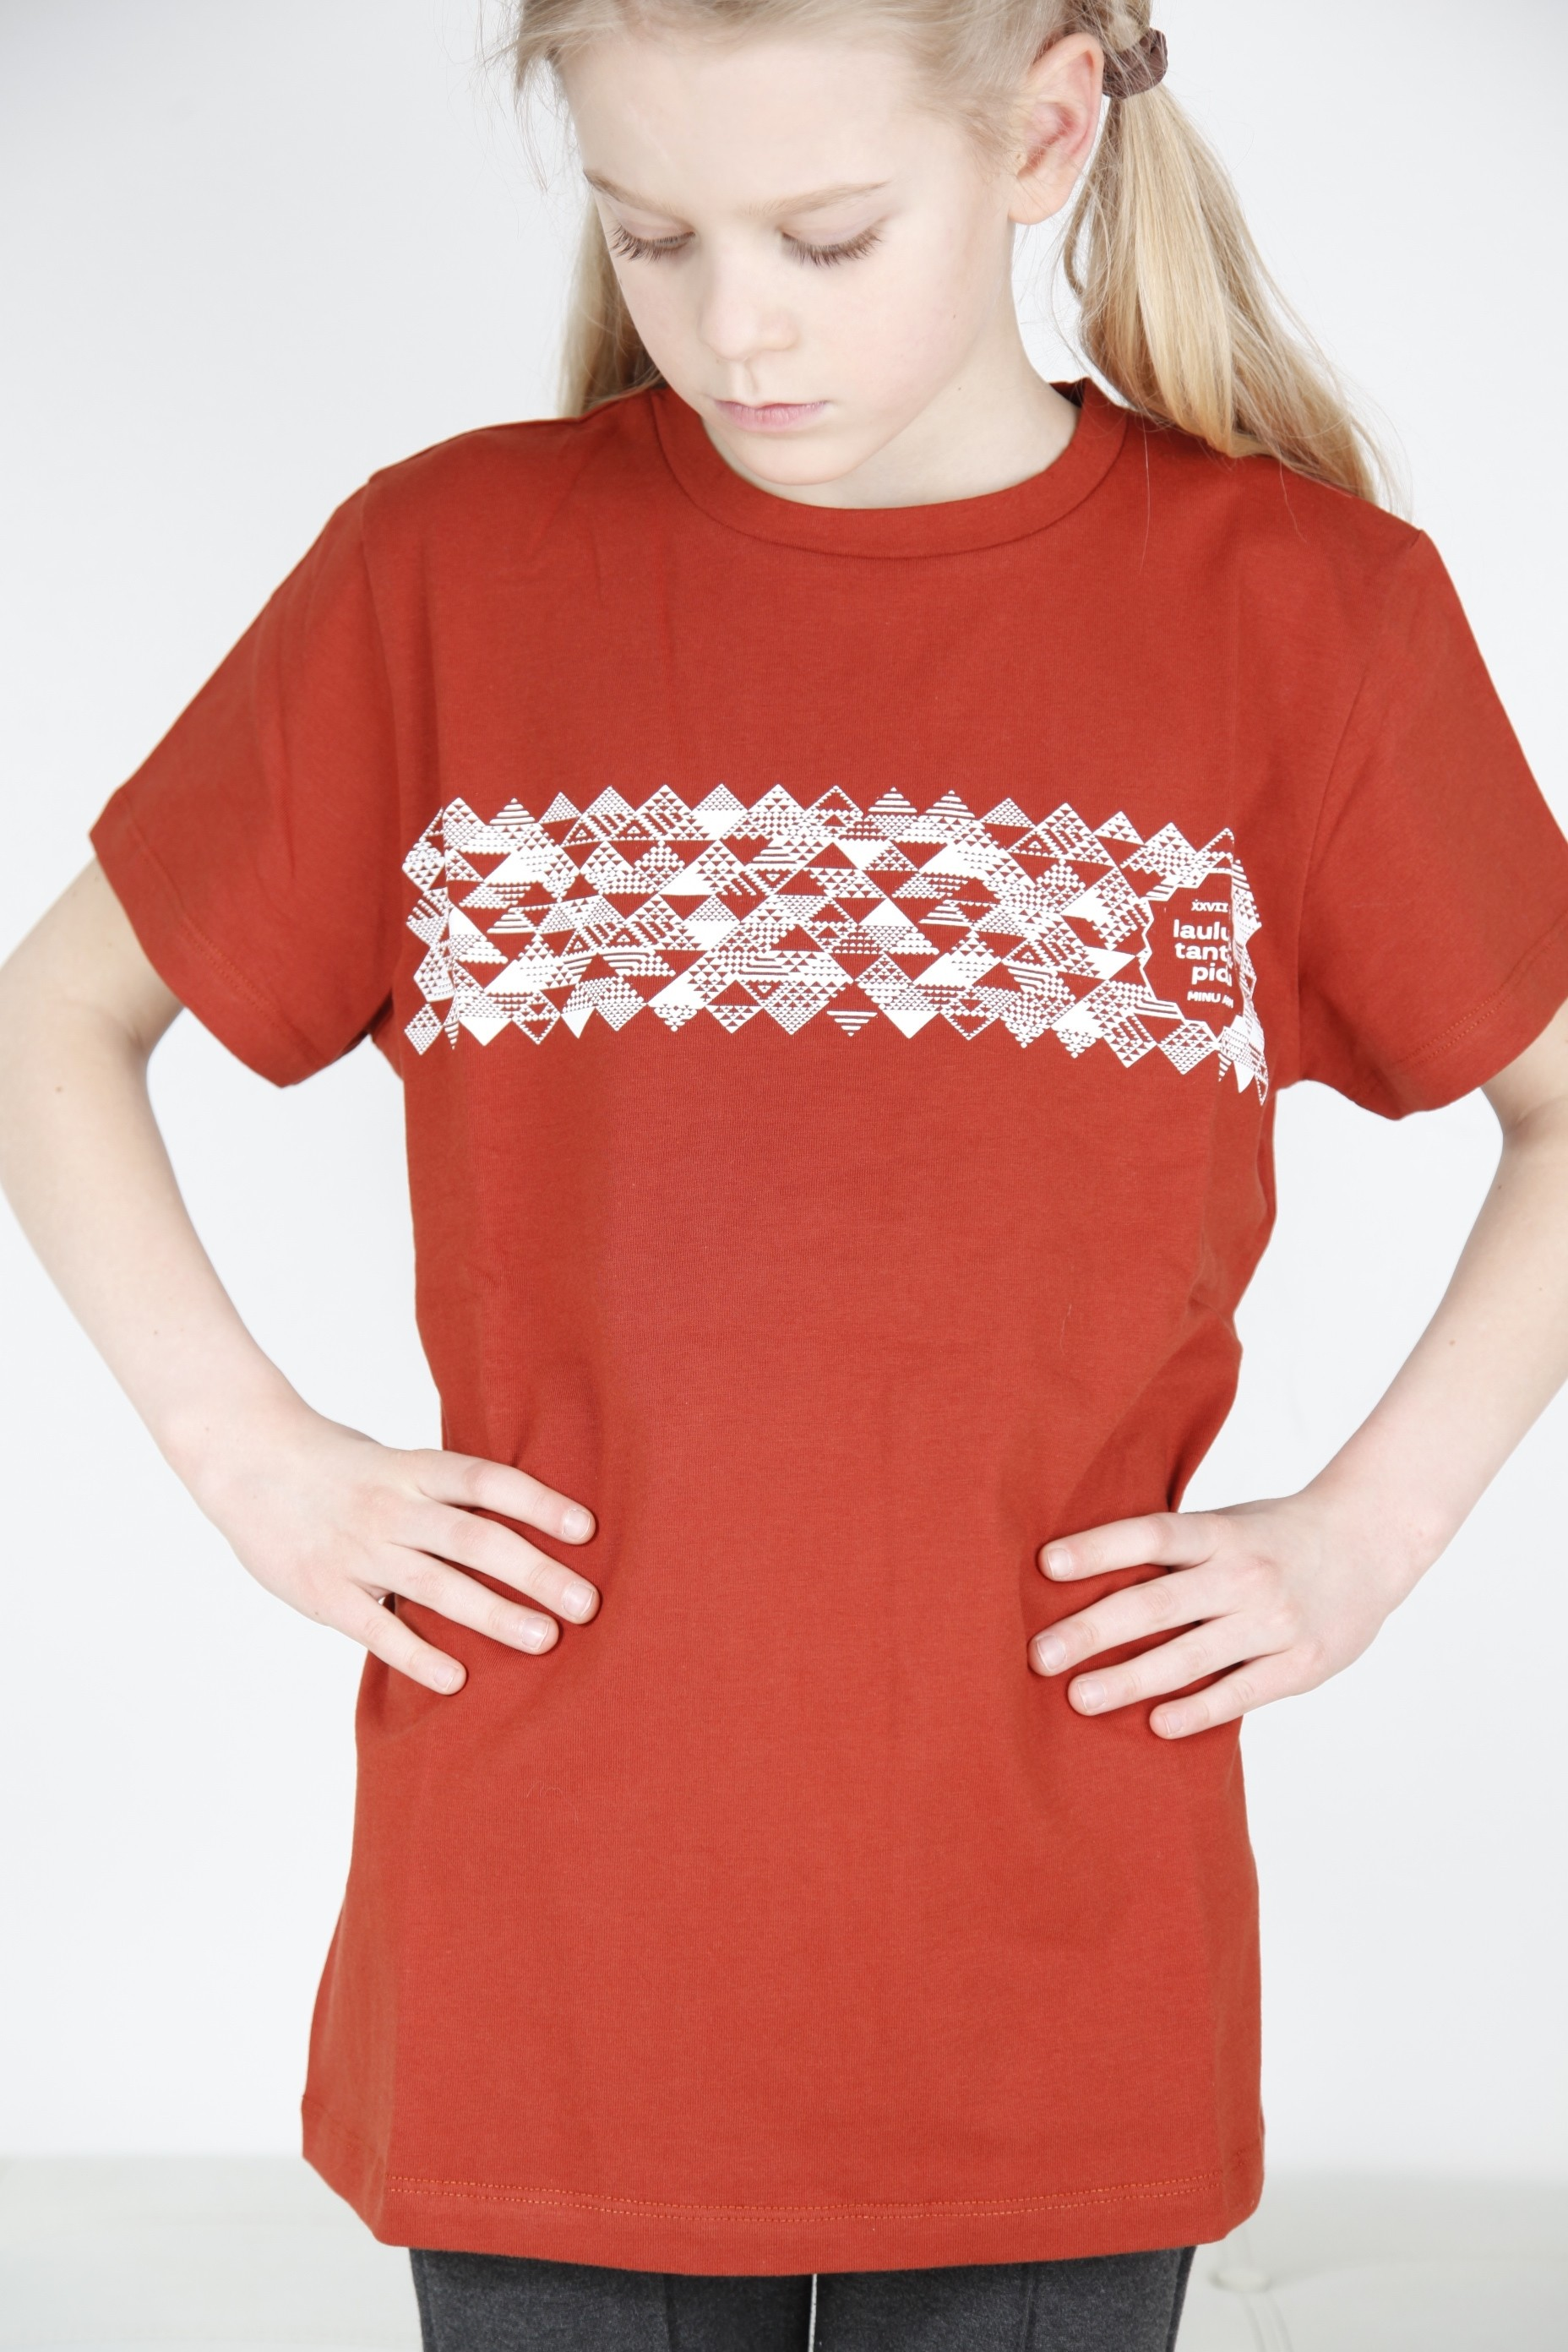 Children's brown T-shirt MUUSIKA (music)